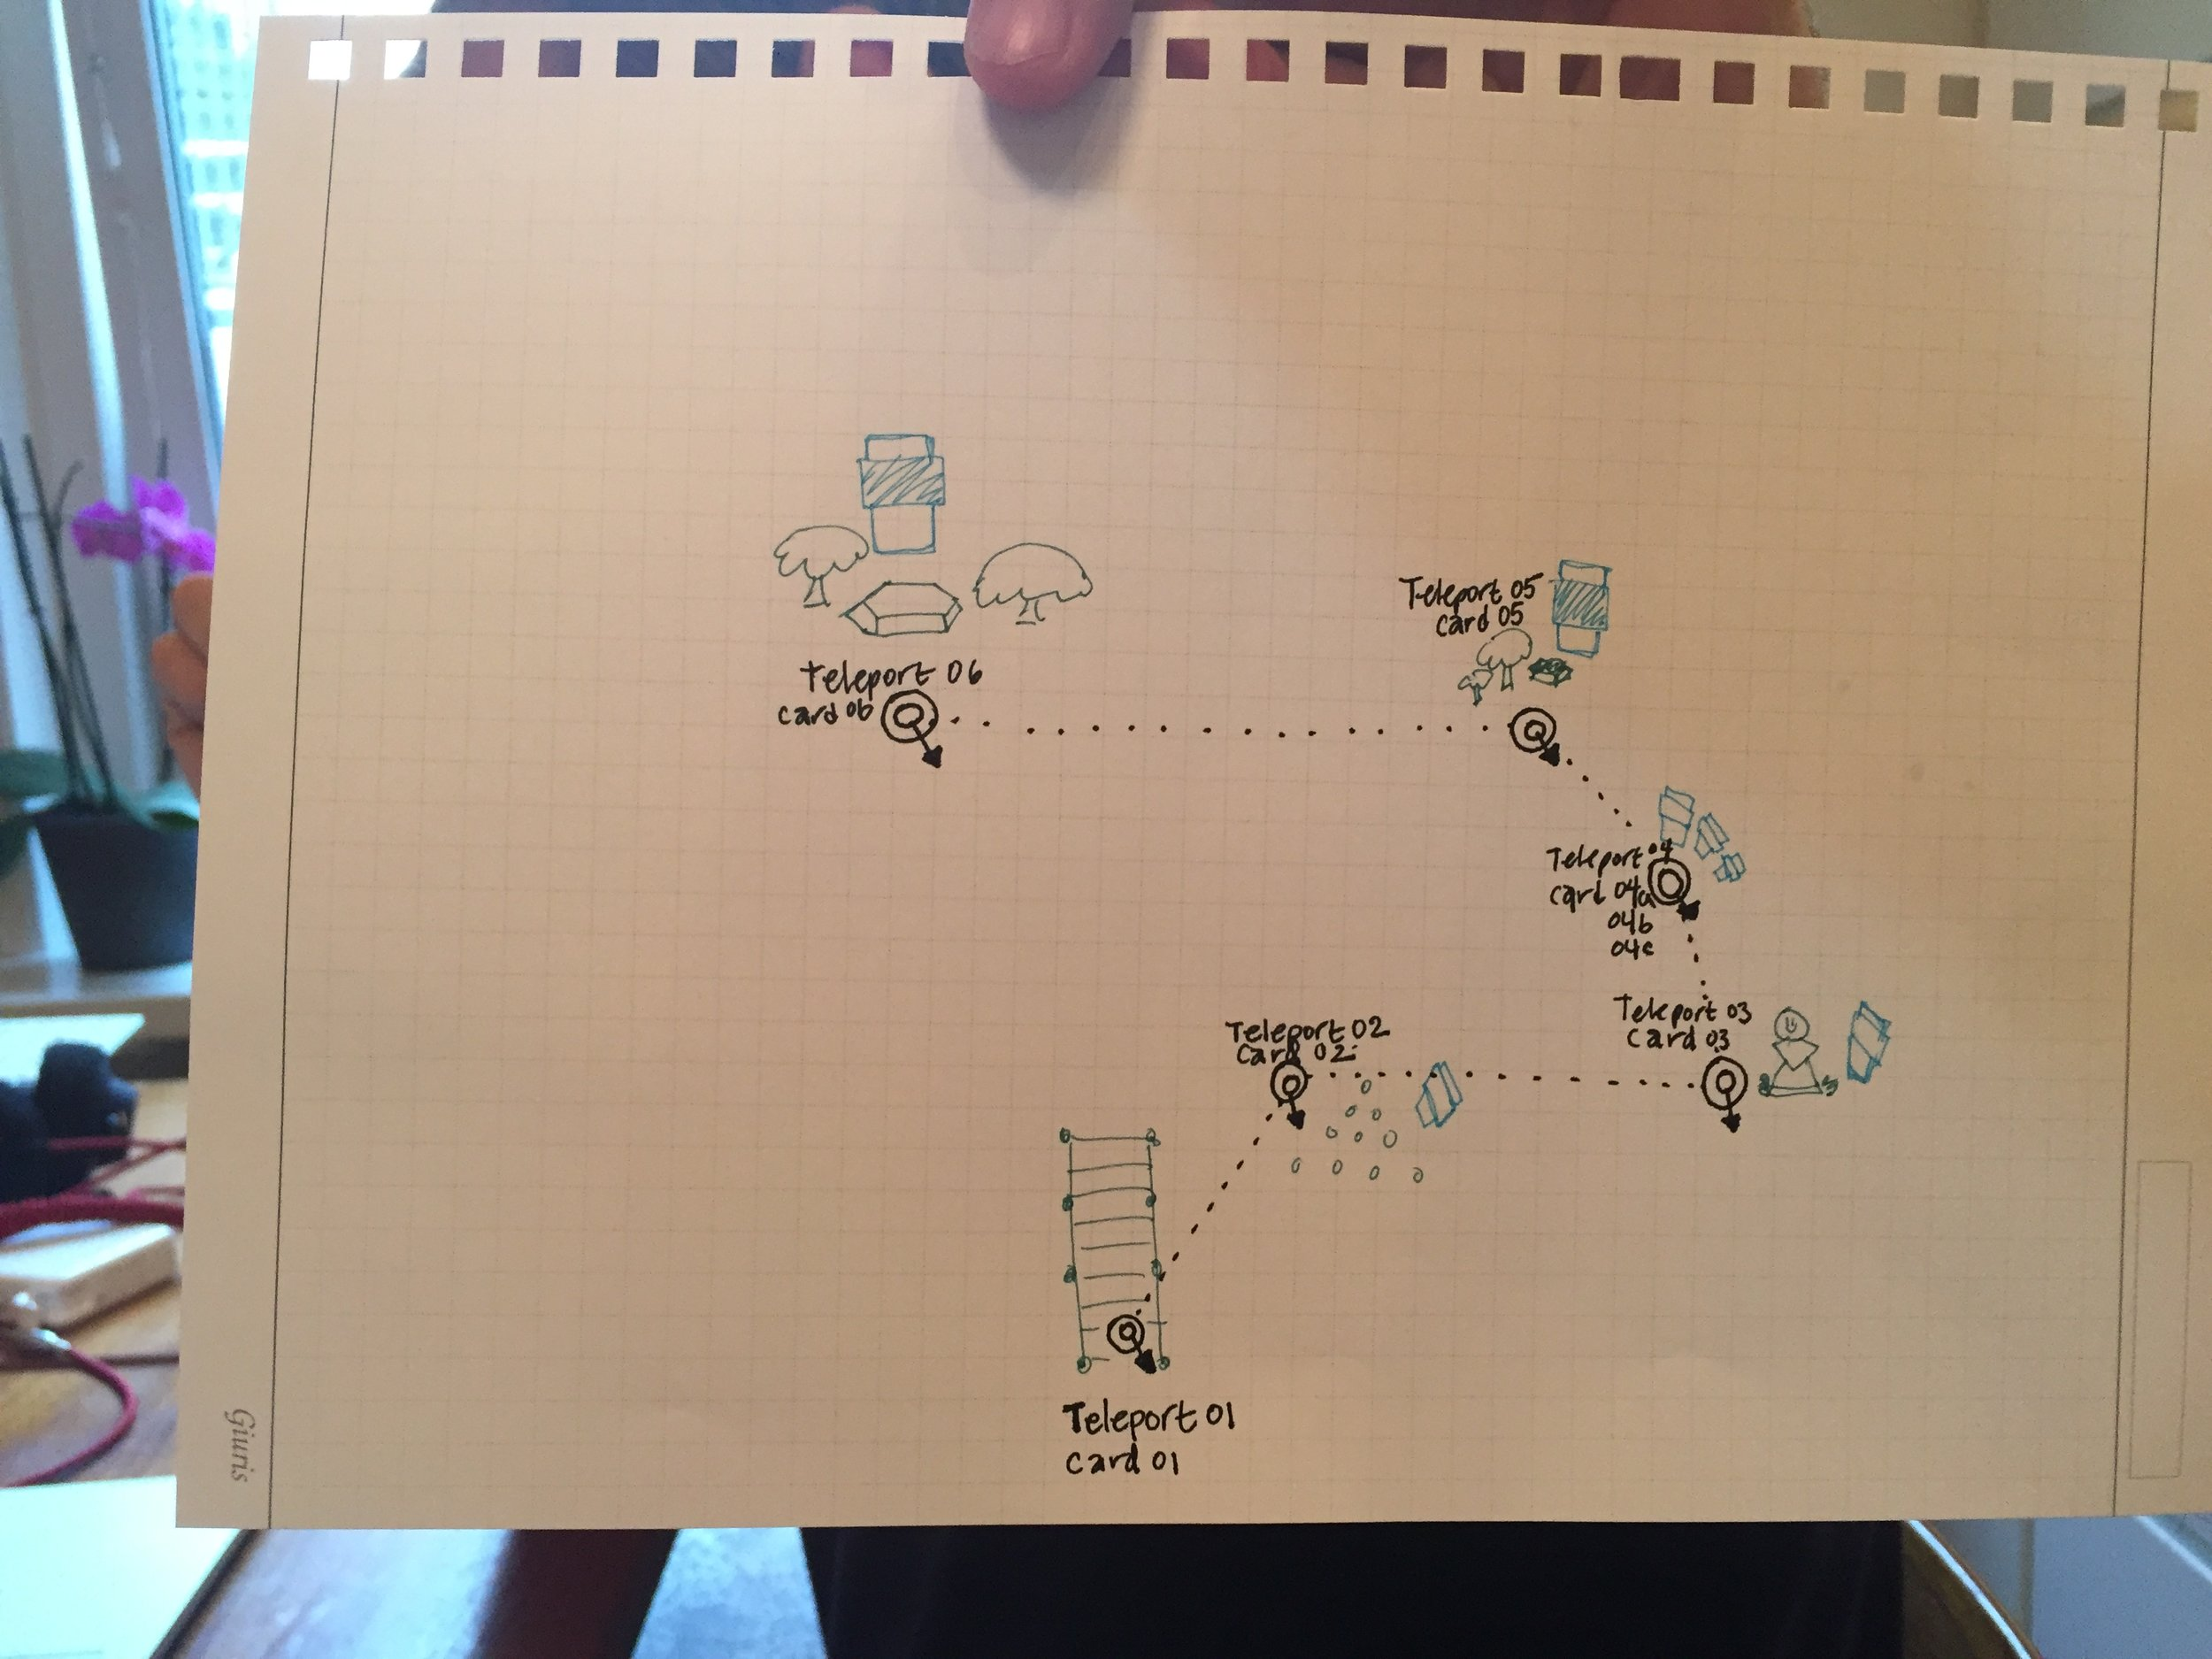 My rushed schematic hand-off to husband for placing the teleporters and info-cards at designated points of interest